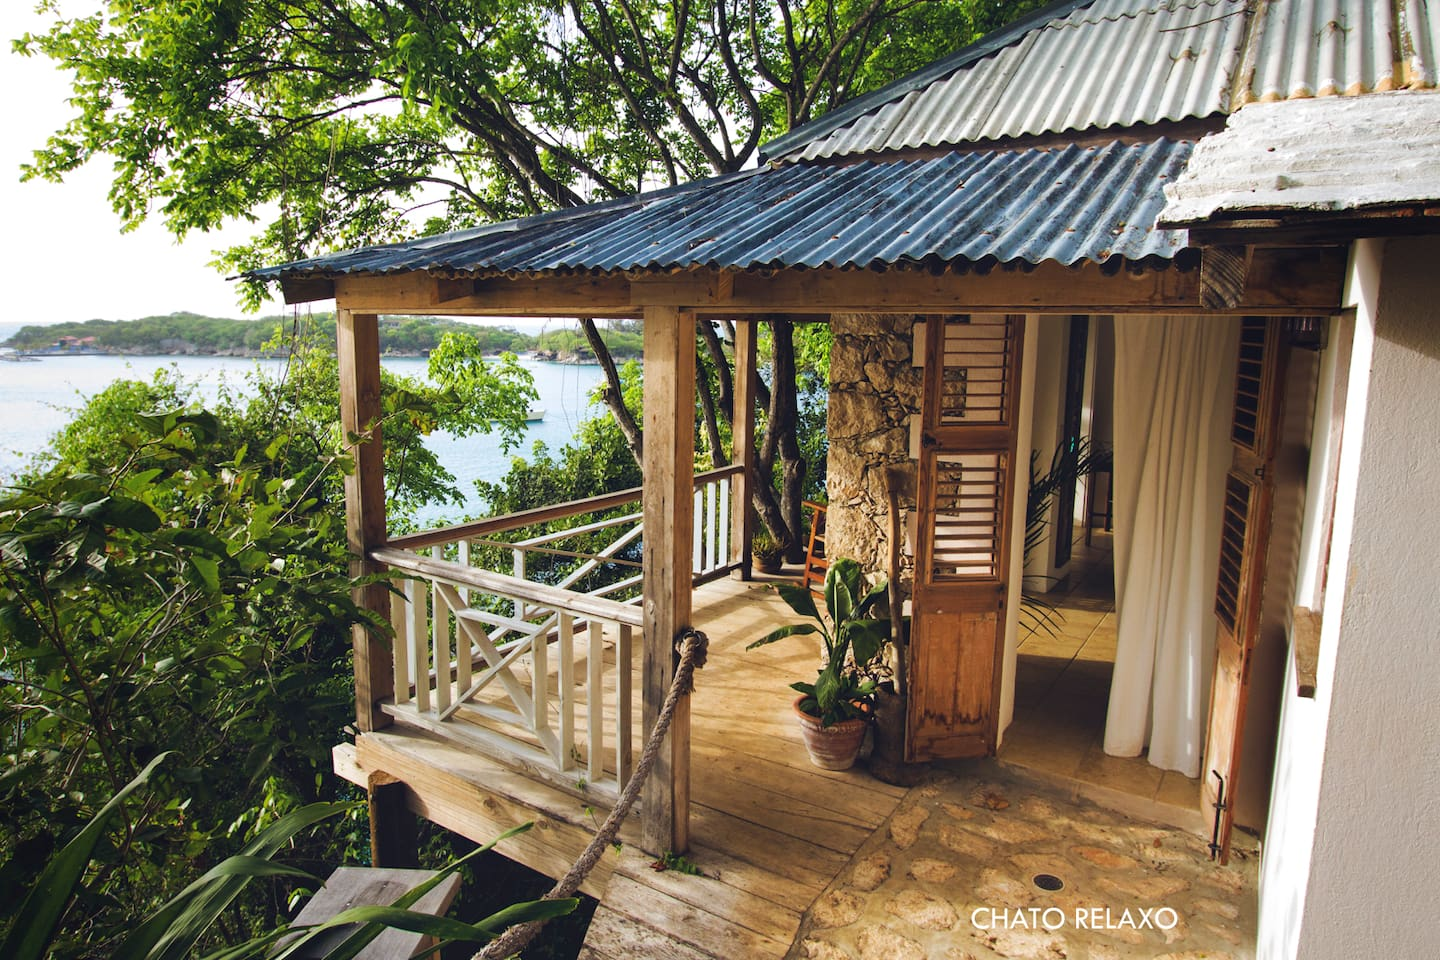 Chato Relaxo is a private bungalow in Labadie, Haiti.